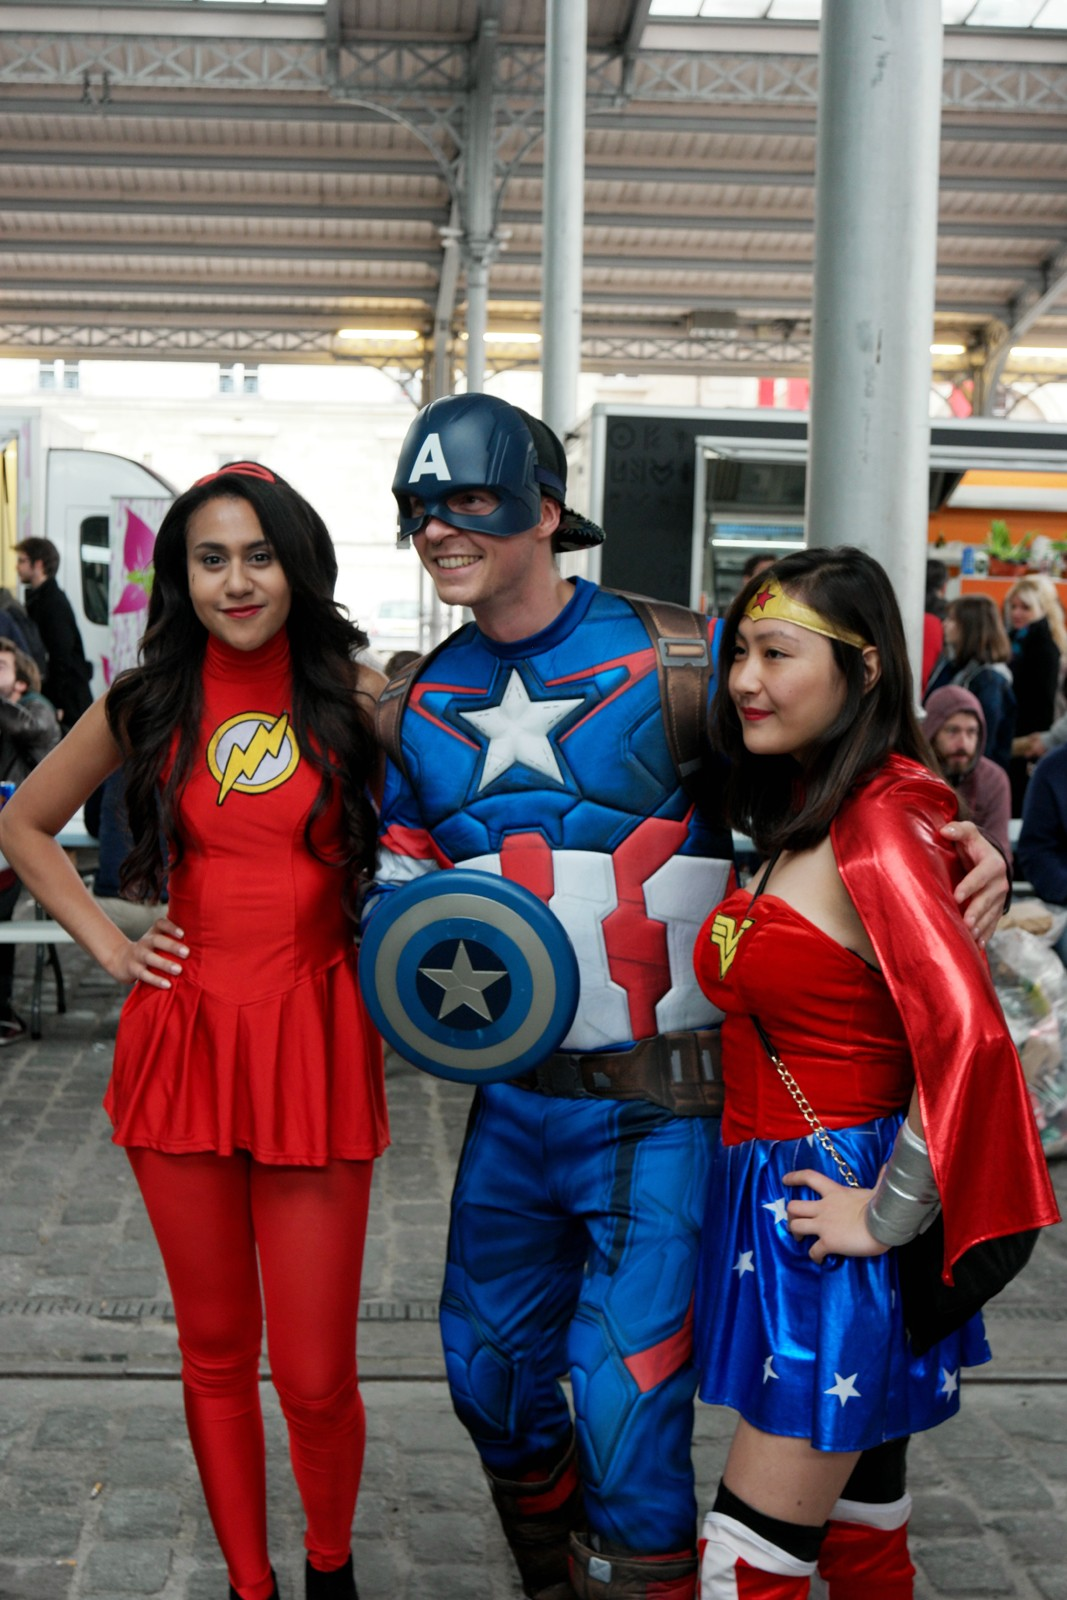 Captain America Super woman Comic Con Paris cosplay festival 2015 Grande Halle de la Villette photo united states of paris blog